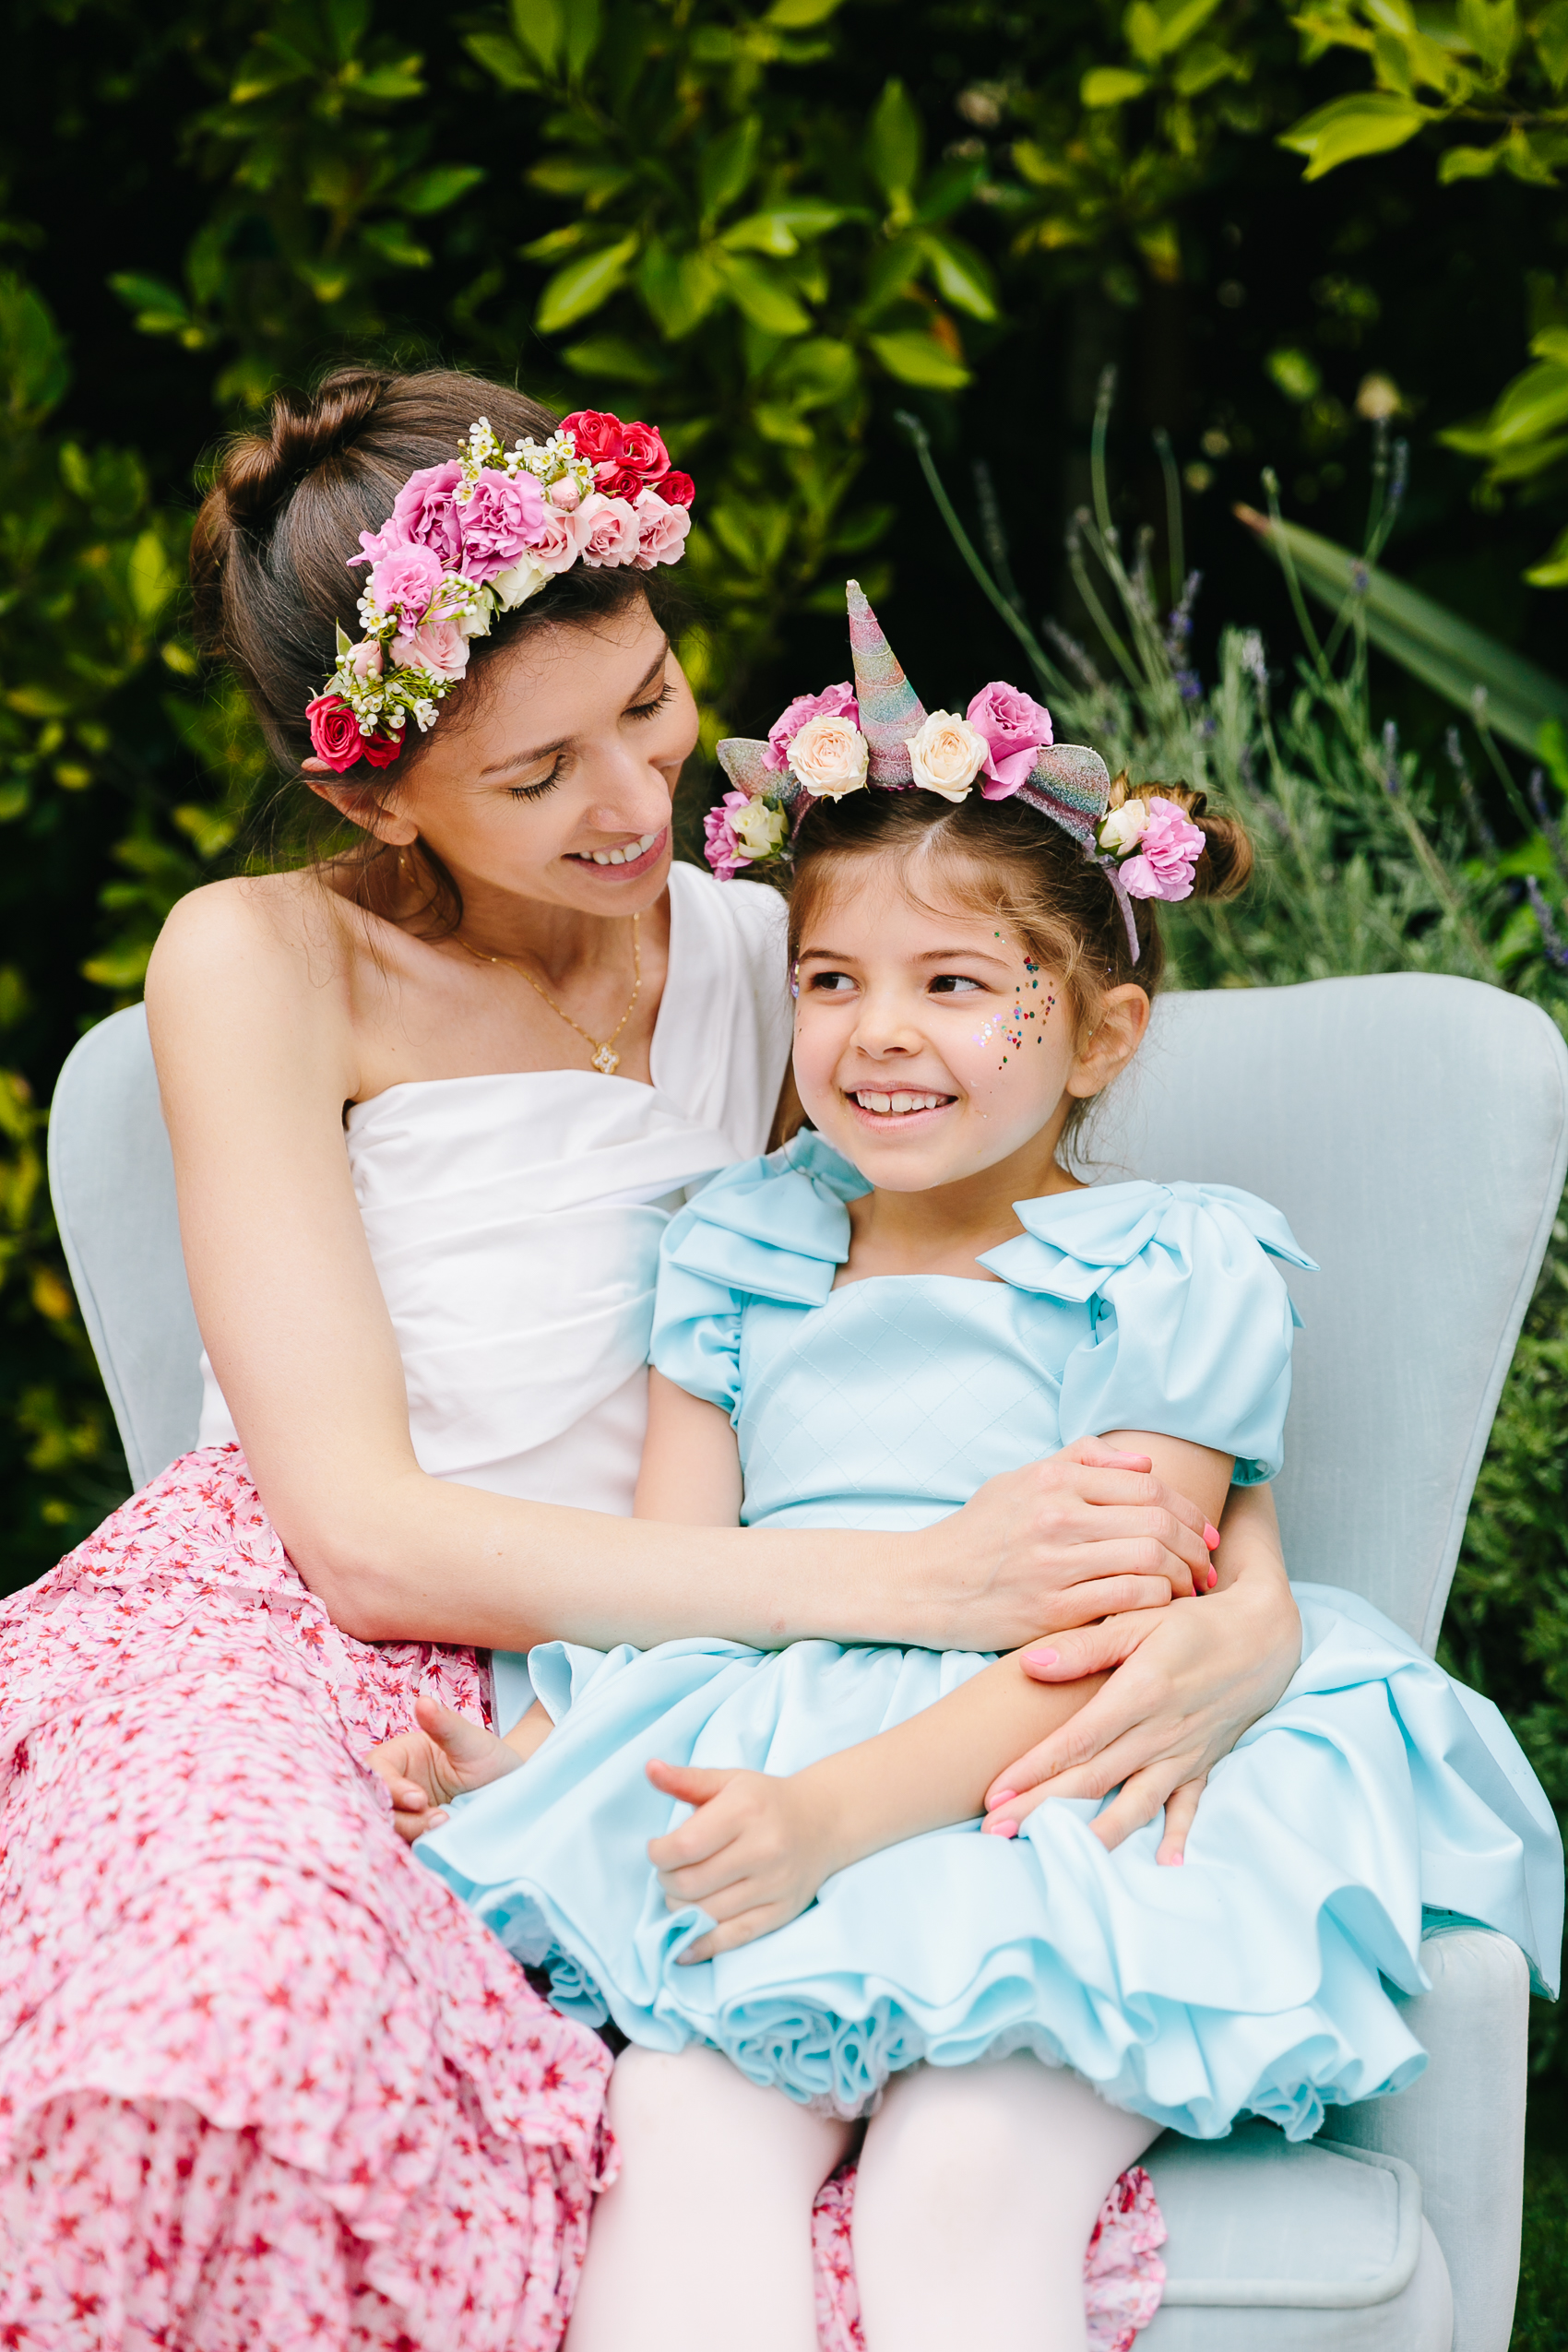 Los_Angeles_Family_Photographer_Luxury_Childrens_Party_Beverly_Hills_Unicorn_Birthday_Party-1546.jpg